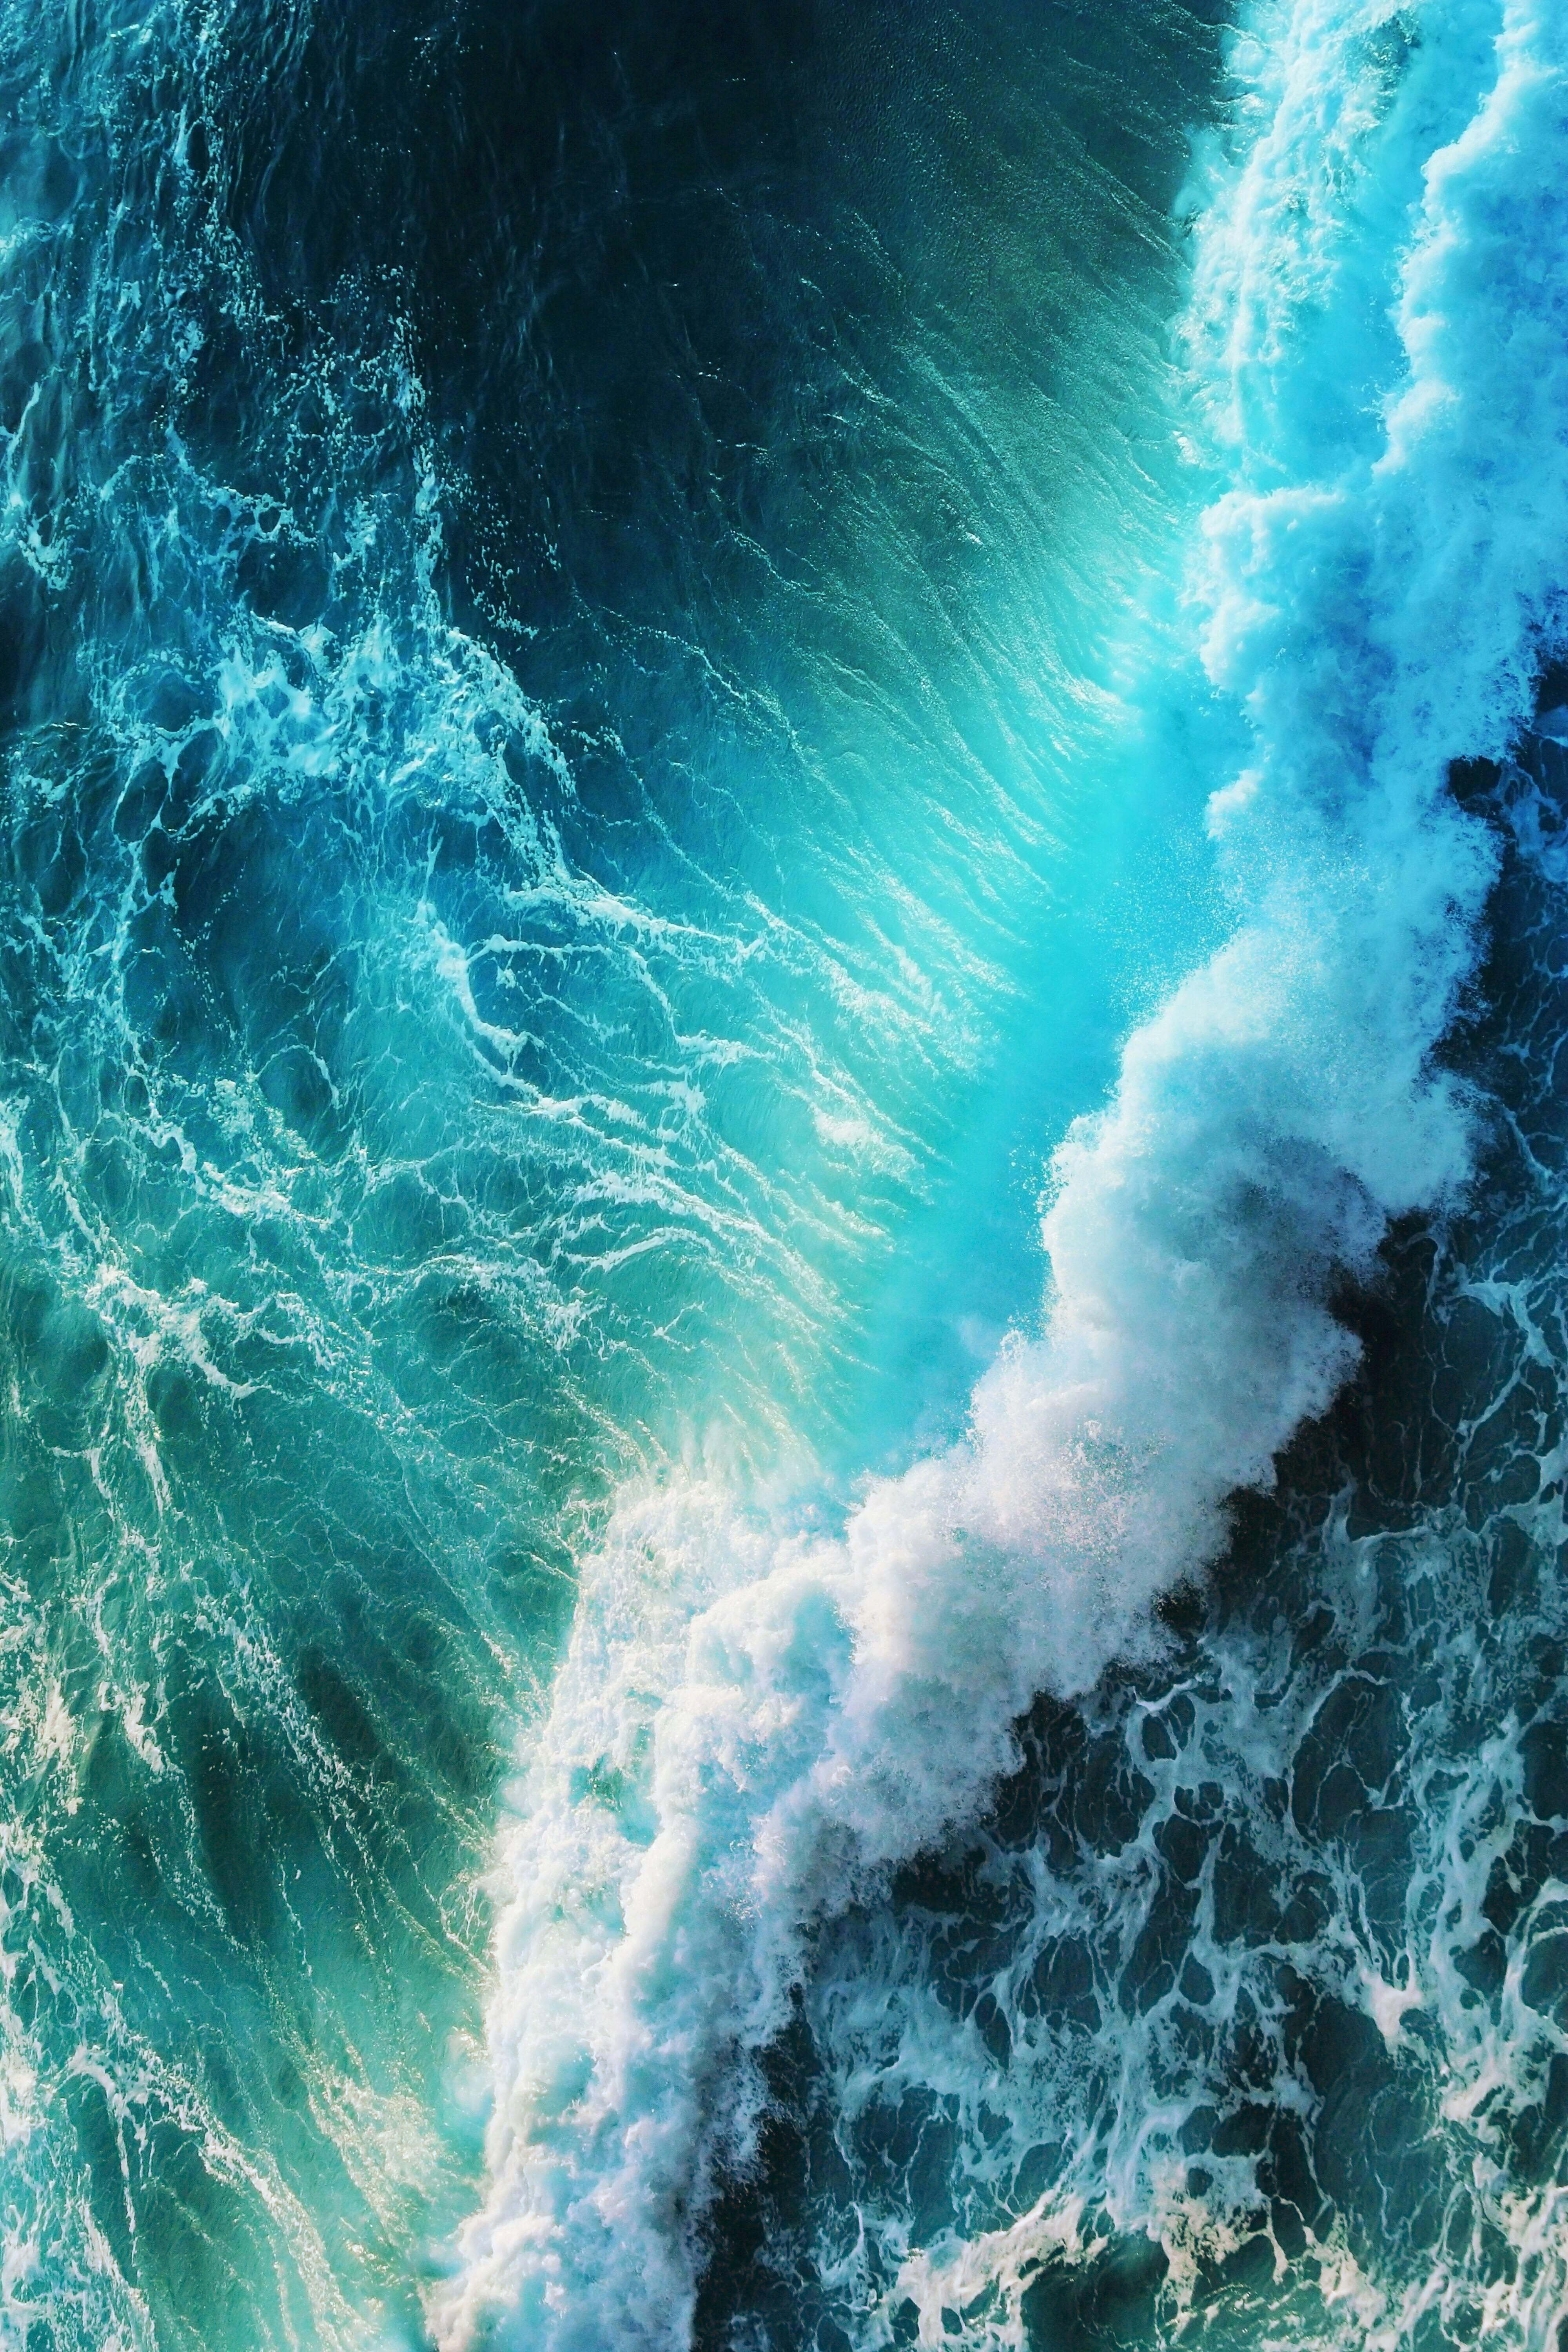 Mobile And Desktop Wallpaper Hd Ocean Wallpaper Waves Photography Sea Photography